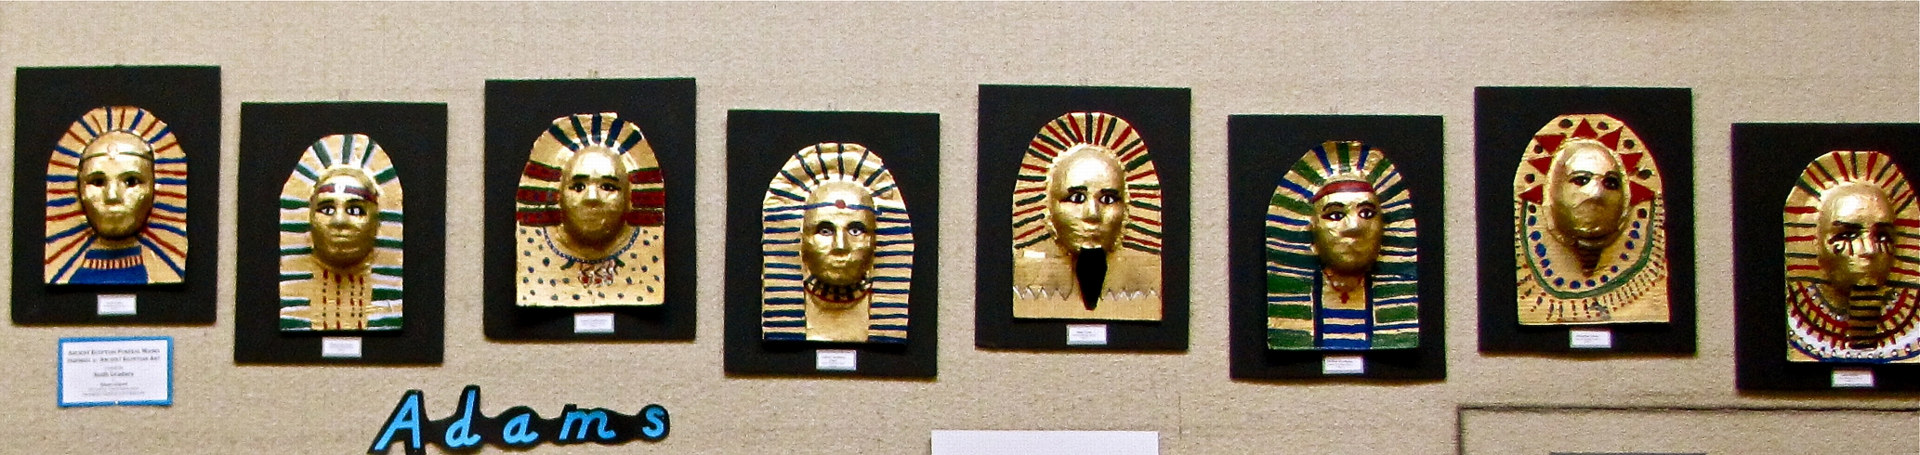 Gr. 6 - Ancient Civilizations - Egyptian Funeral Masks by Linnie (Victoria) Aikens Lindsay